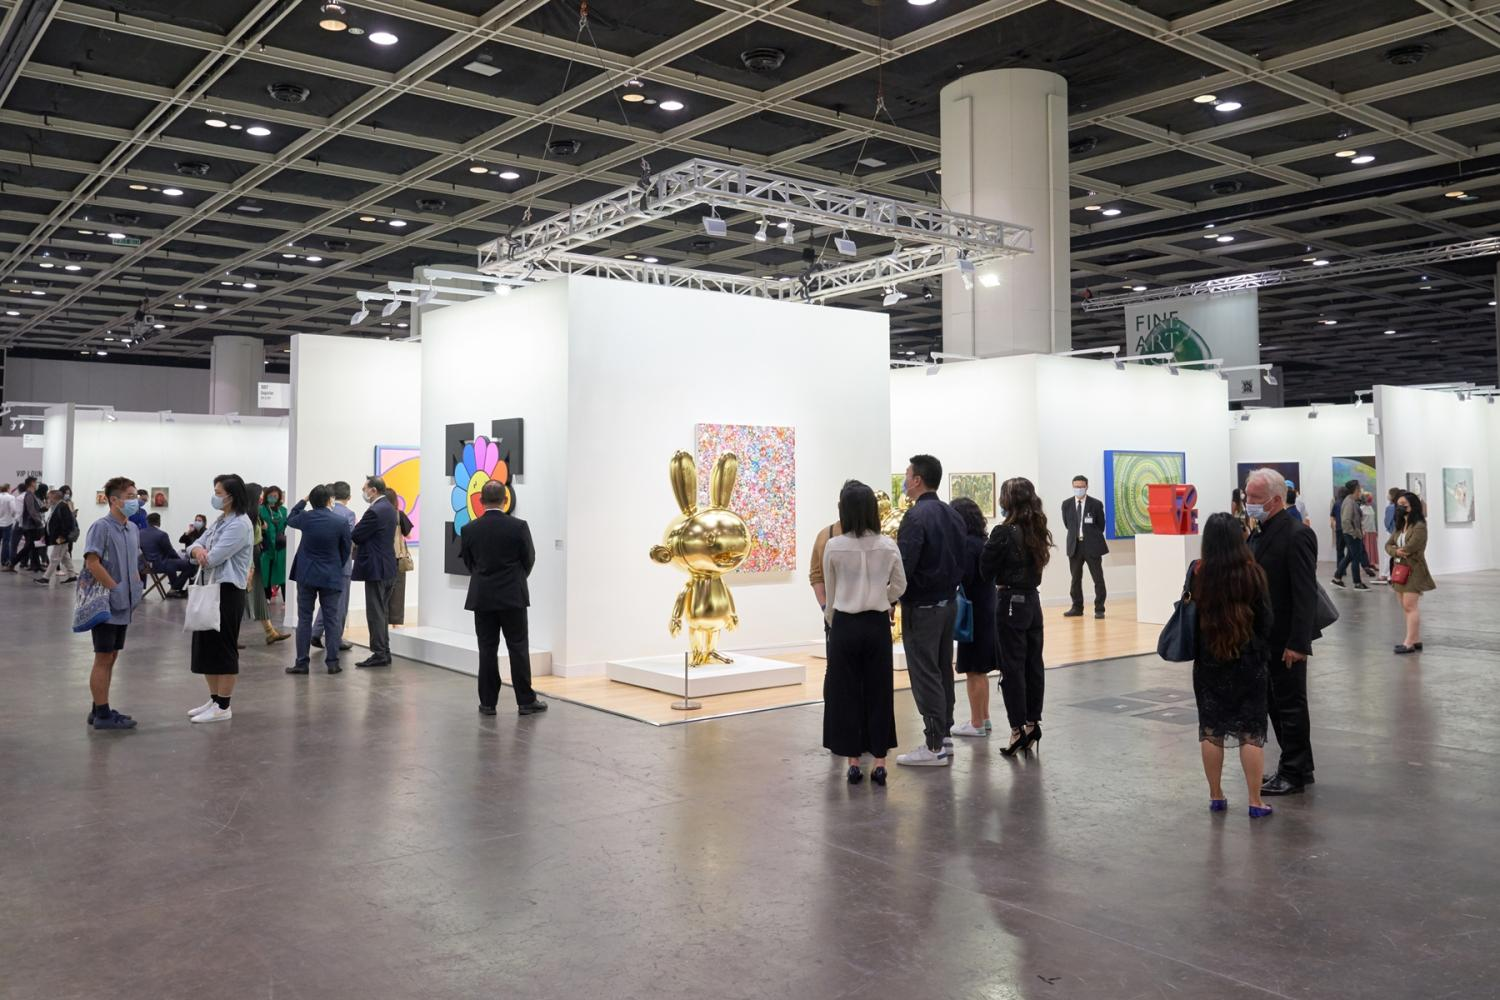 Hong Kong art events go online for global audience